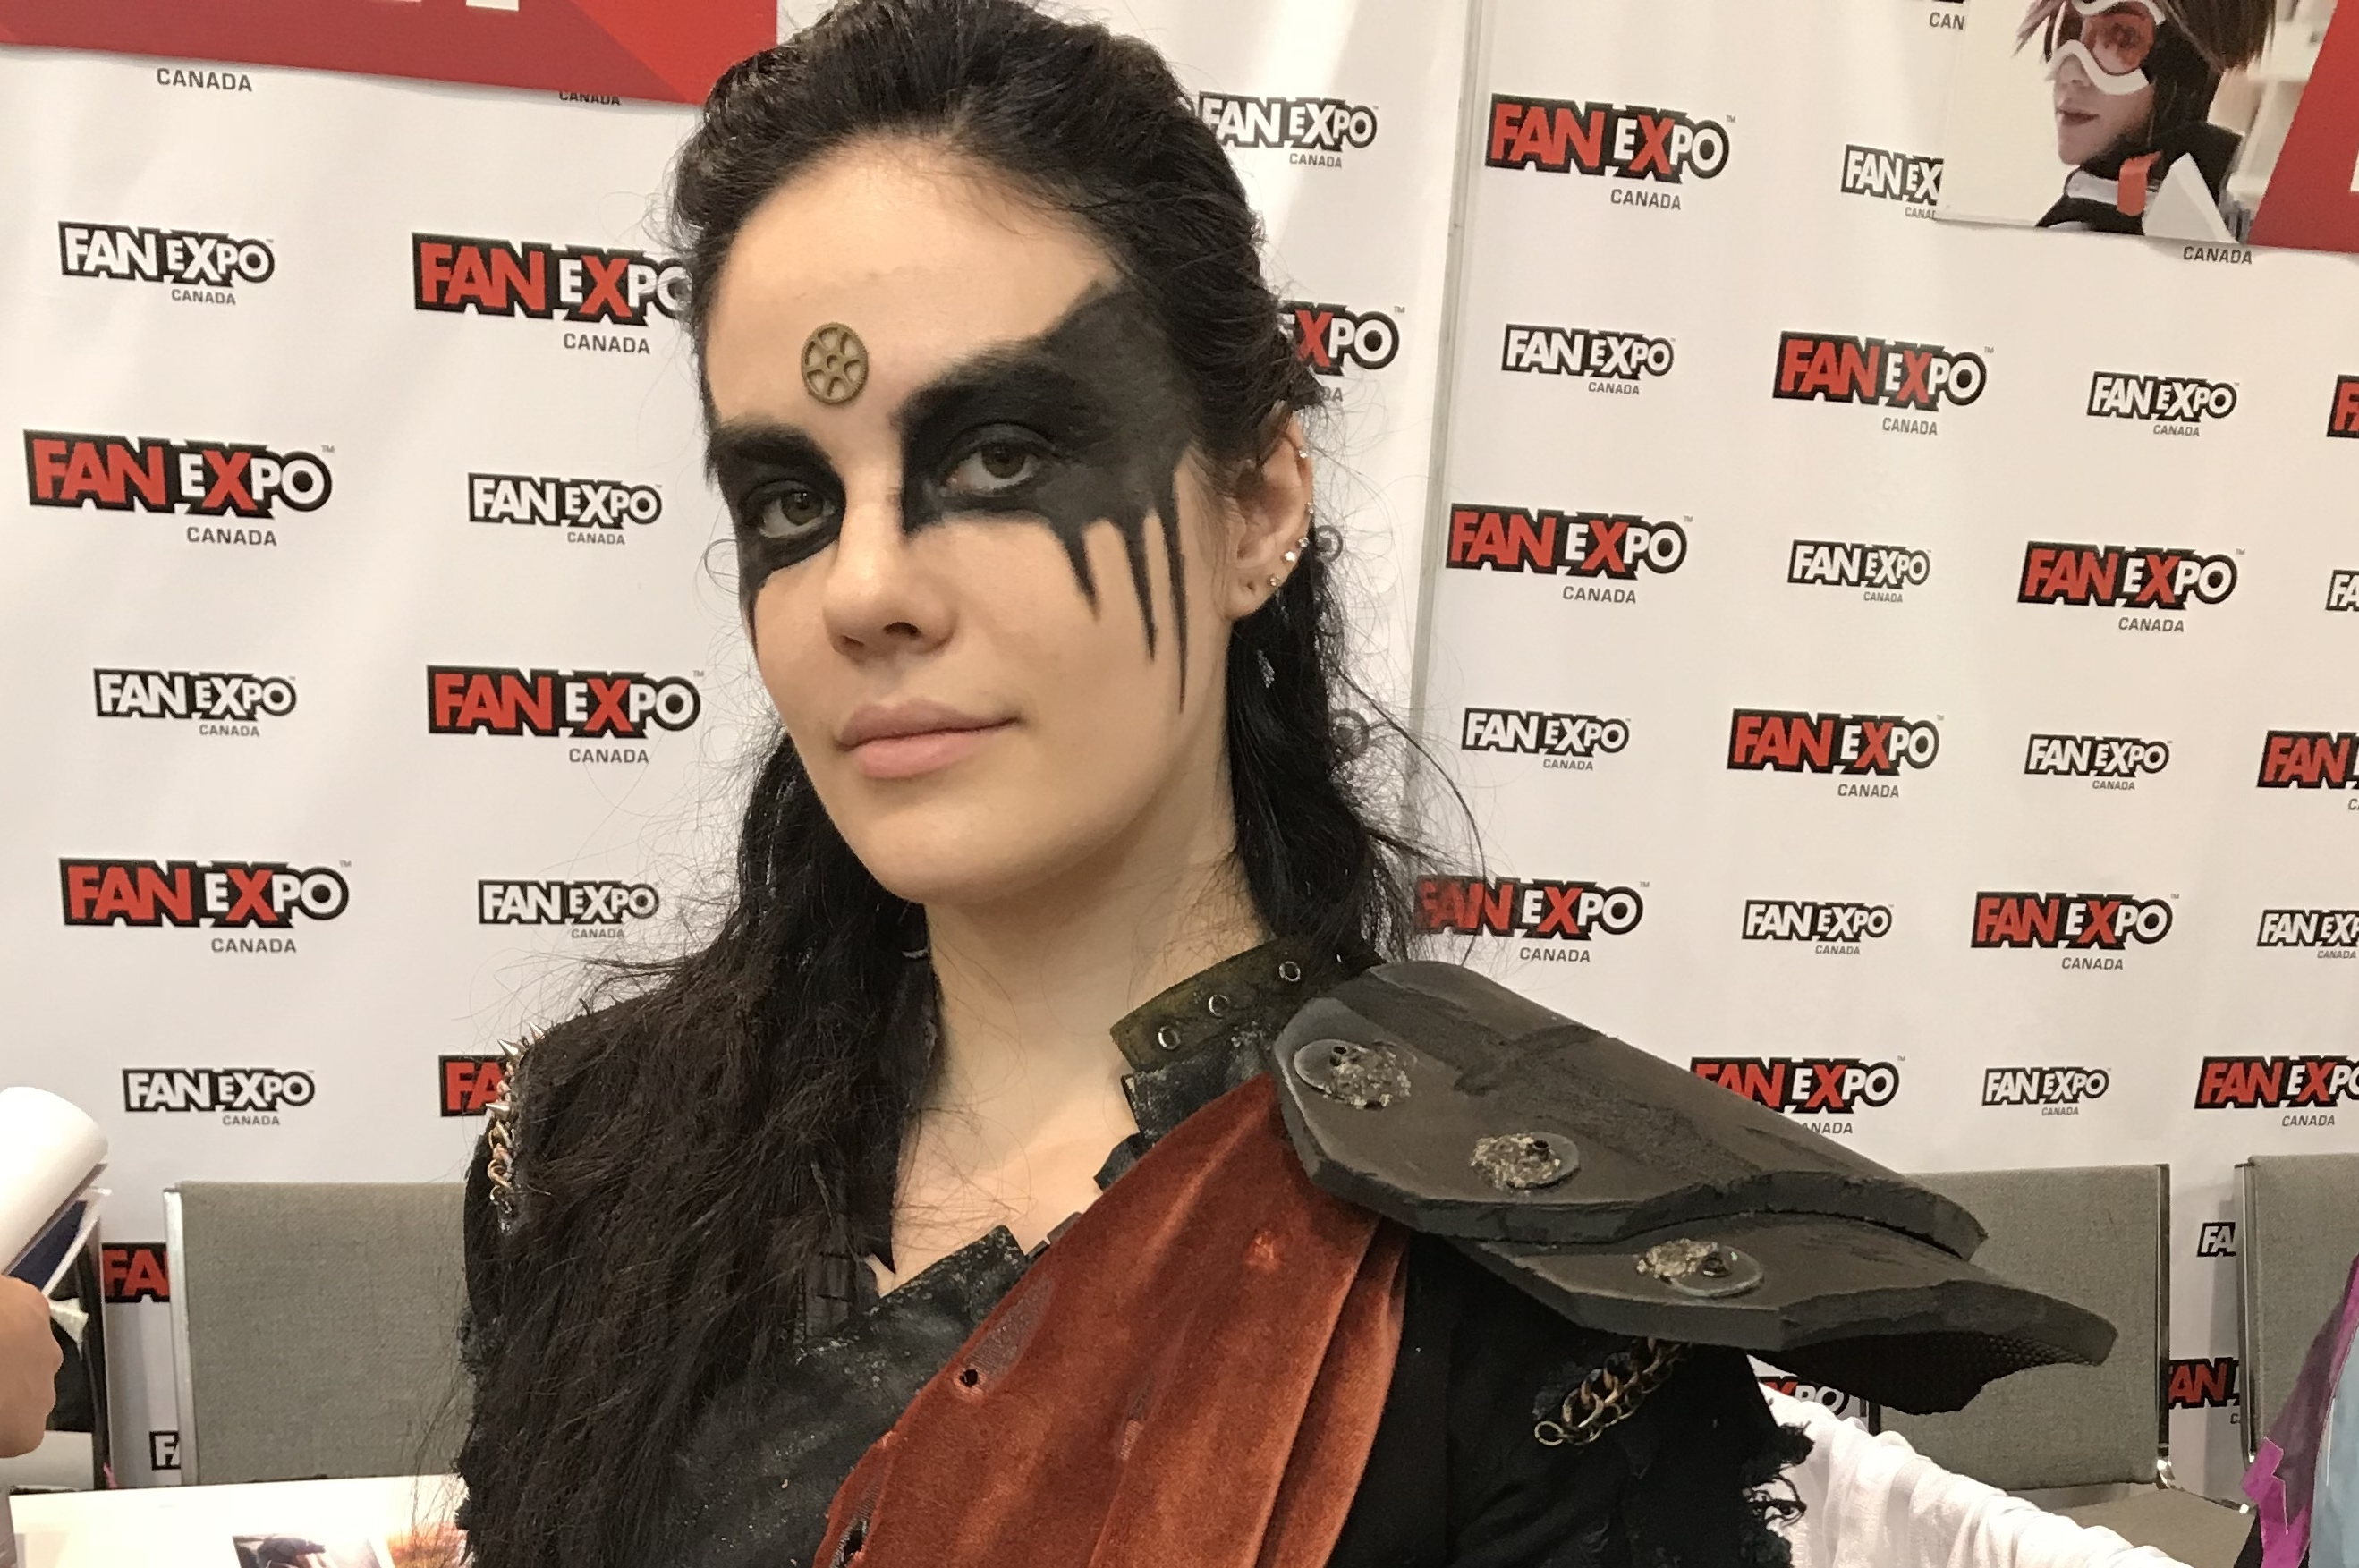 Audrey Cosplay as Lexa from The 100 at Fan Expo Canada 2018.